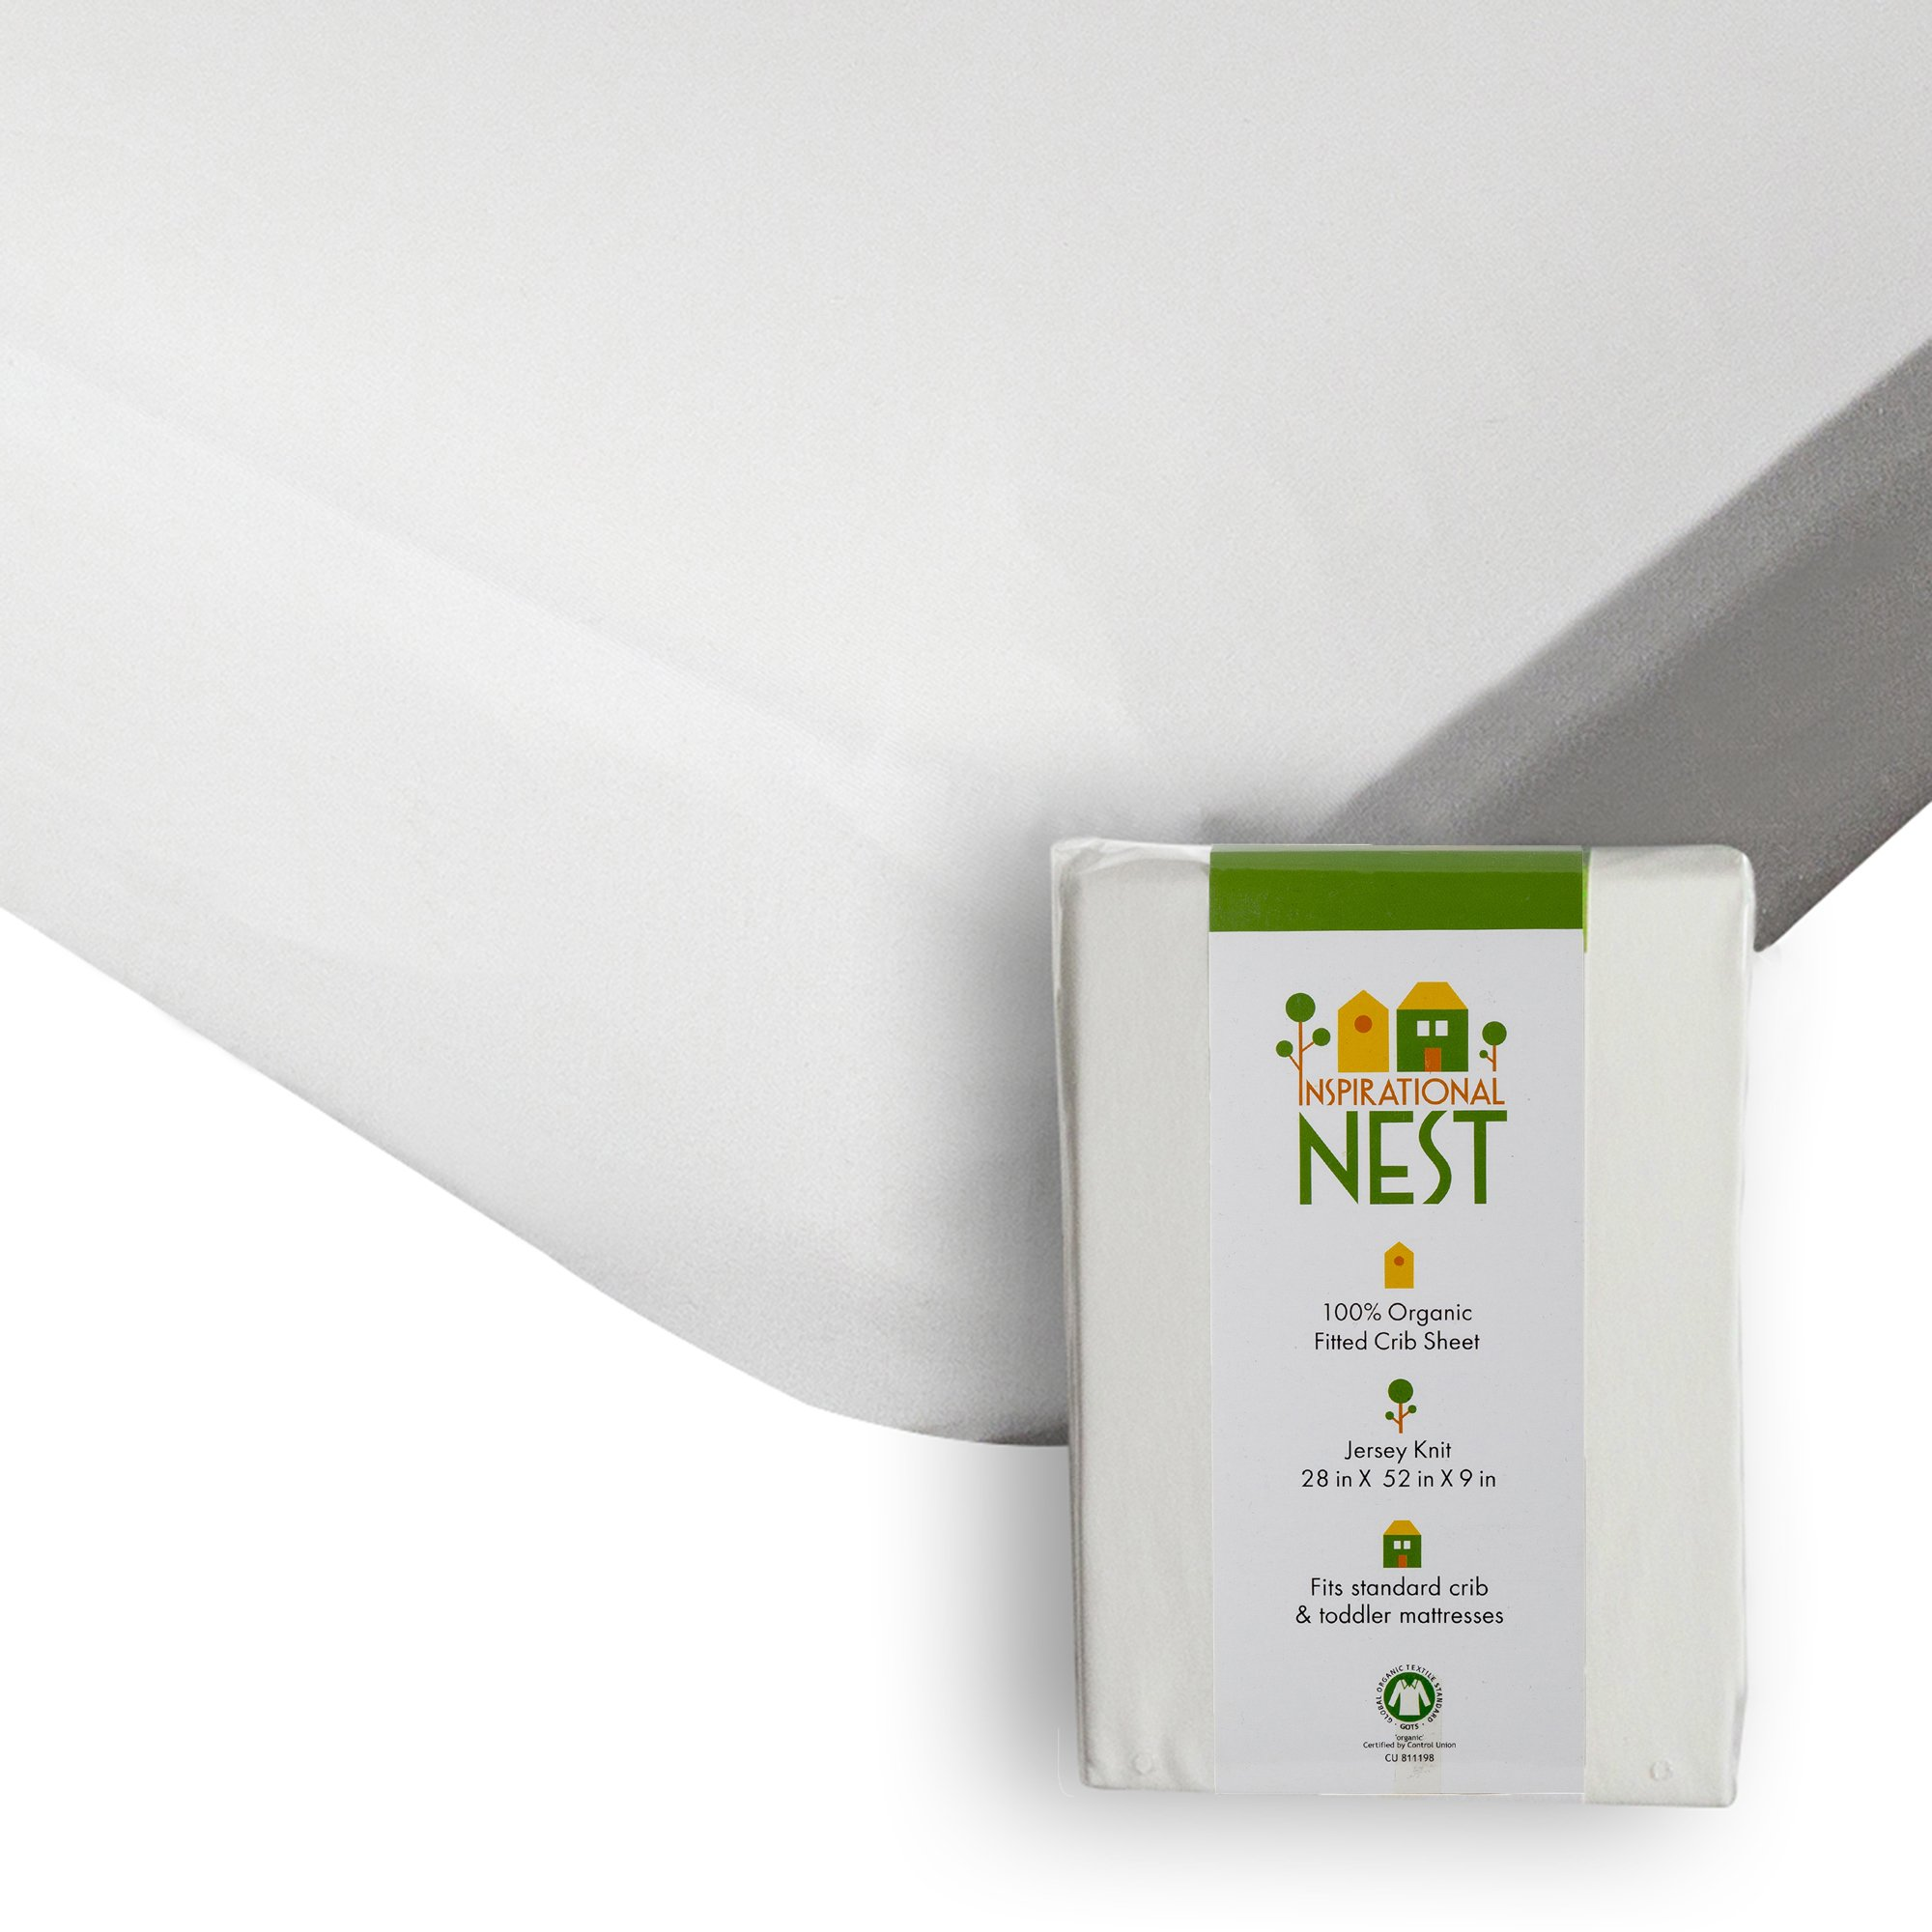 Organic Fitted Crib Sheet - GOTS Certified -100% Organic Cotton- Jersey Knit - More than Organic, Ultra-comfy, Clean and Safe Sheets (Natural/Ecru/Off White) by Inspirational NEST (Image #2)